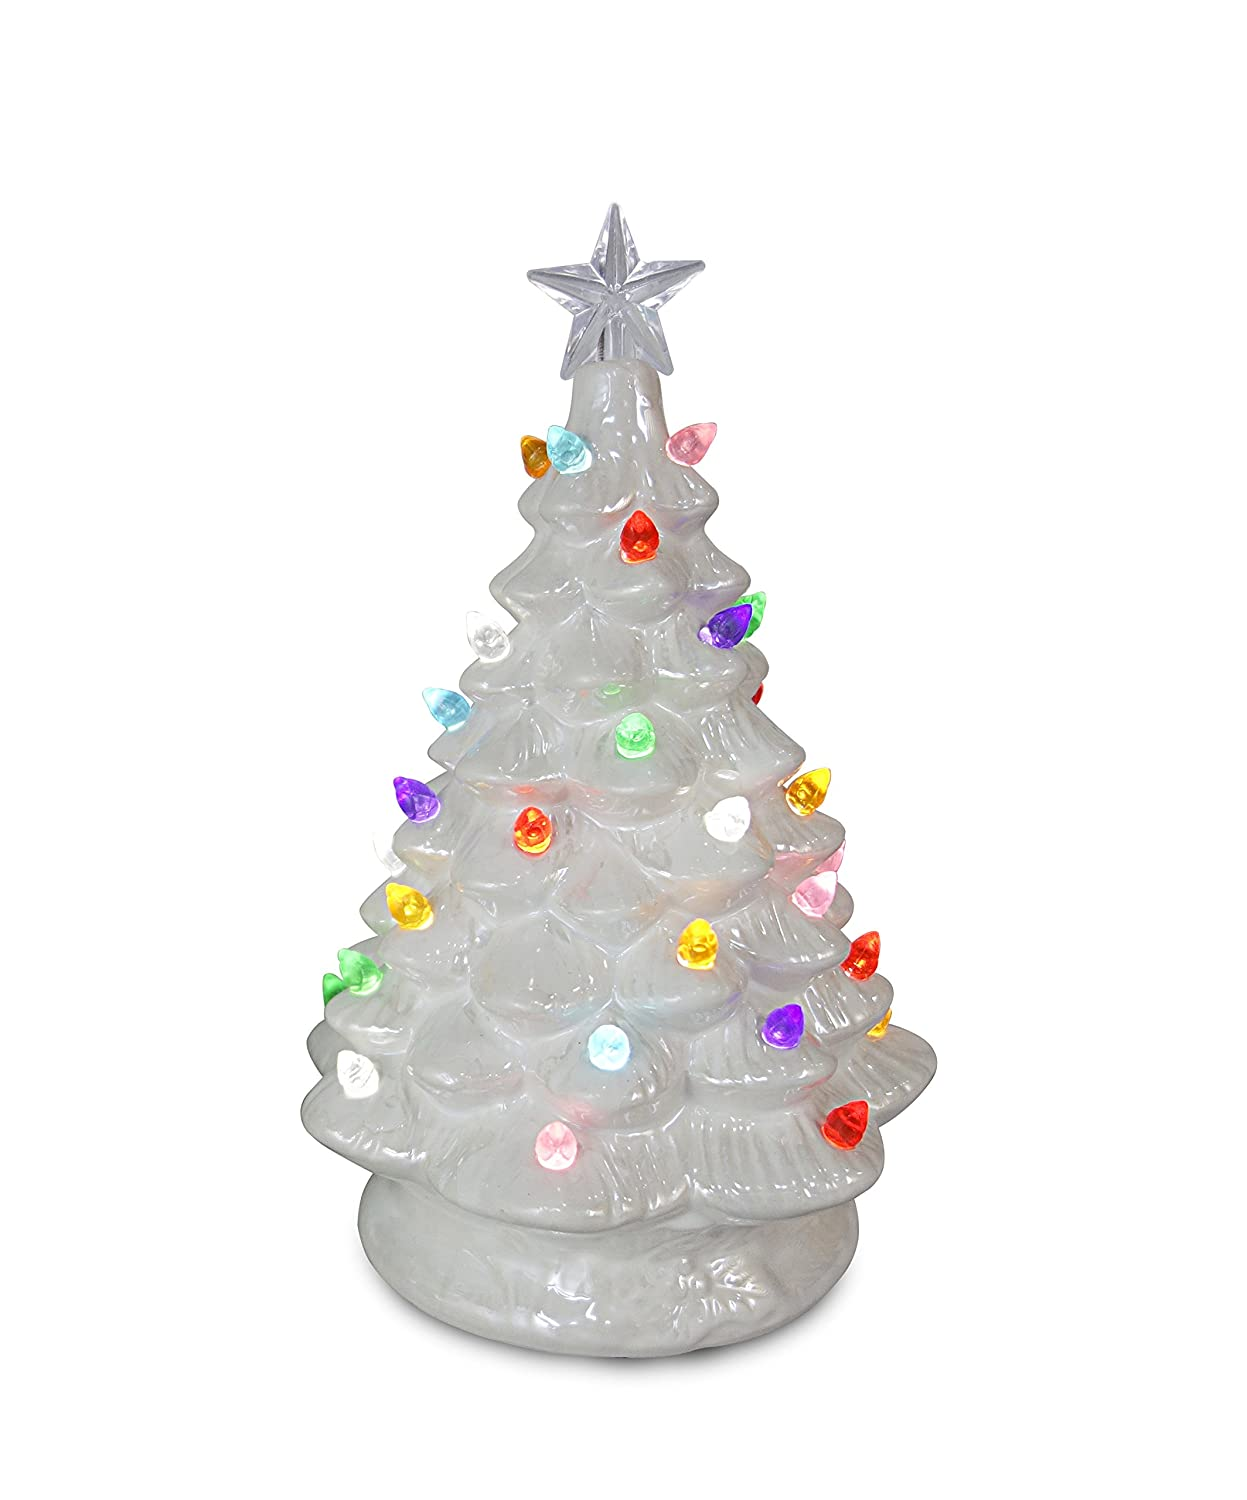 ReLive Christmas is Forever Lighted Tabletop Ceramic Tree (Christmas Cactus/Multi Color Lights, 11-Inch) Opportunities Inc